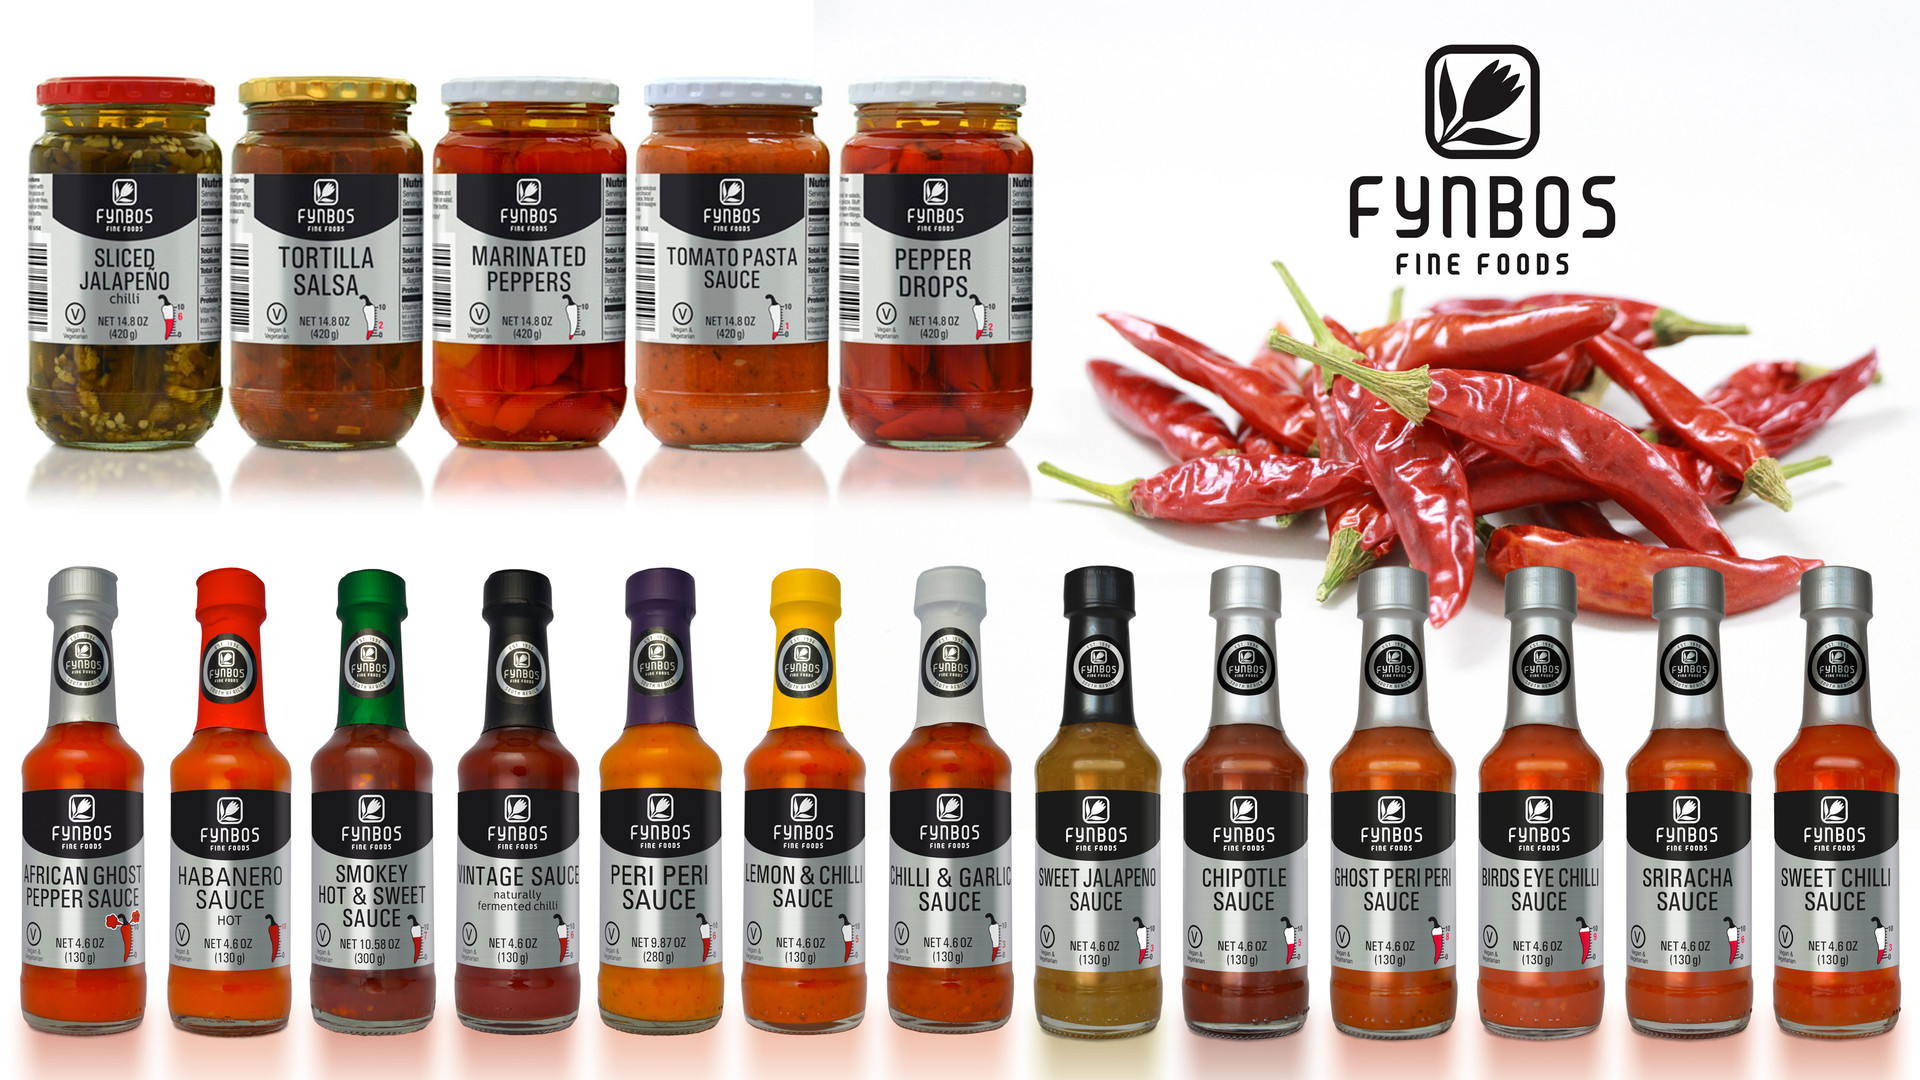 Fynbos Fine Foods packaging